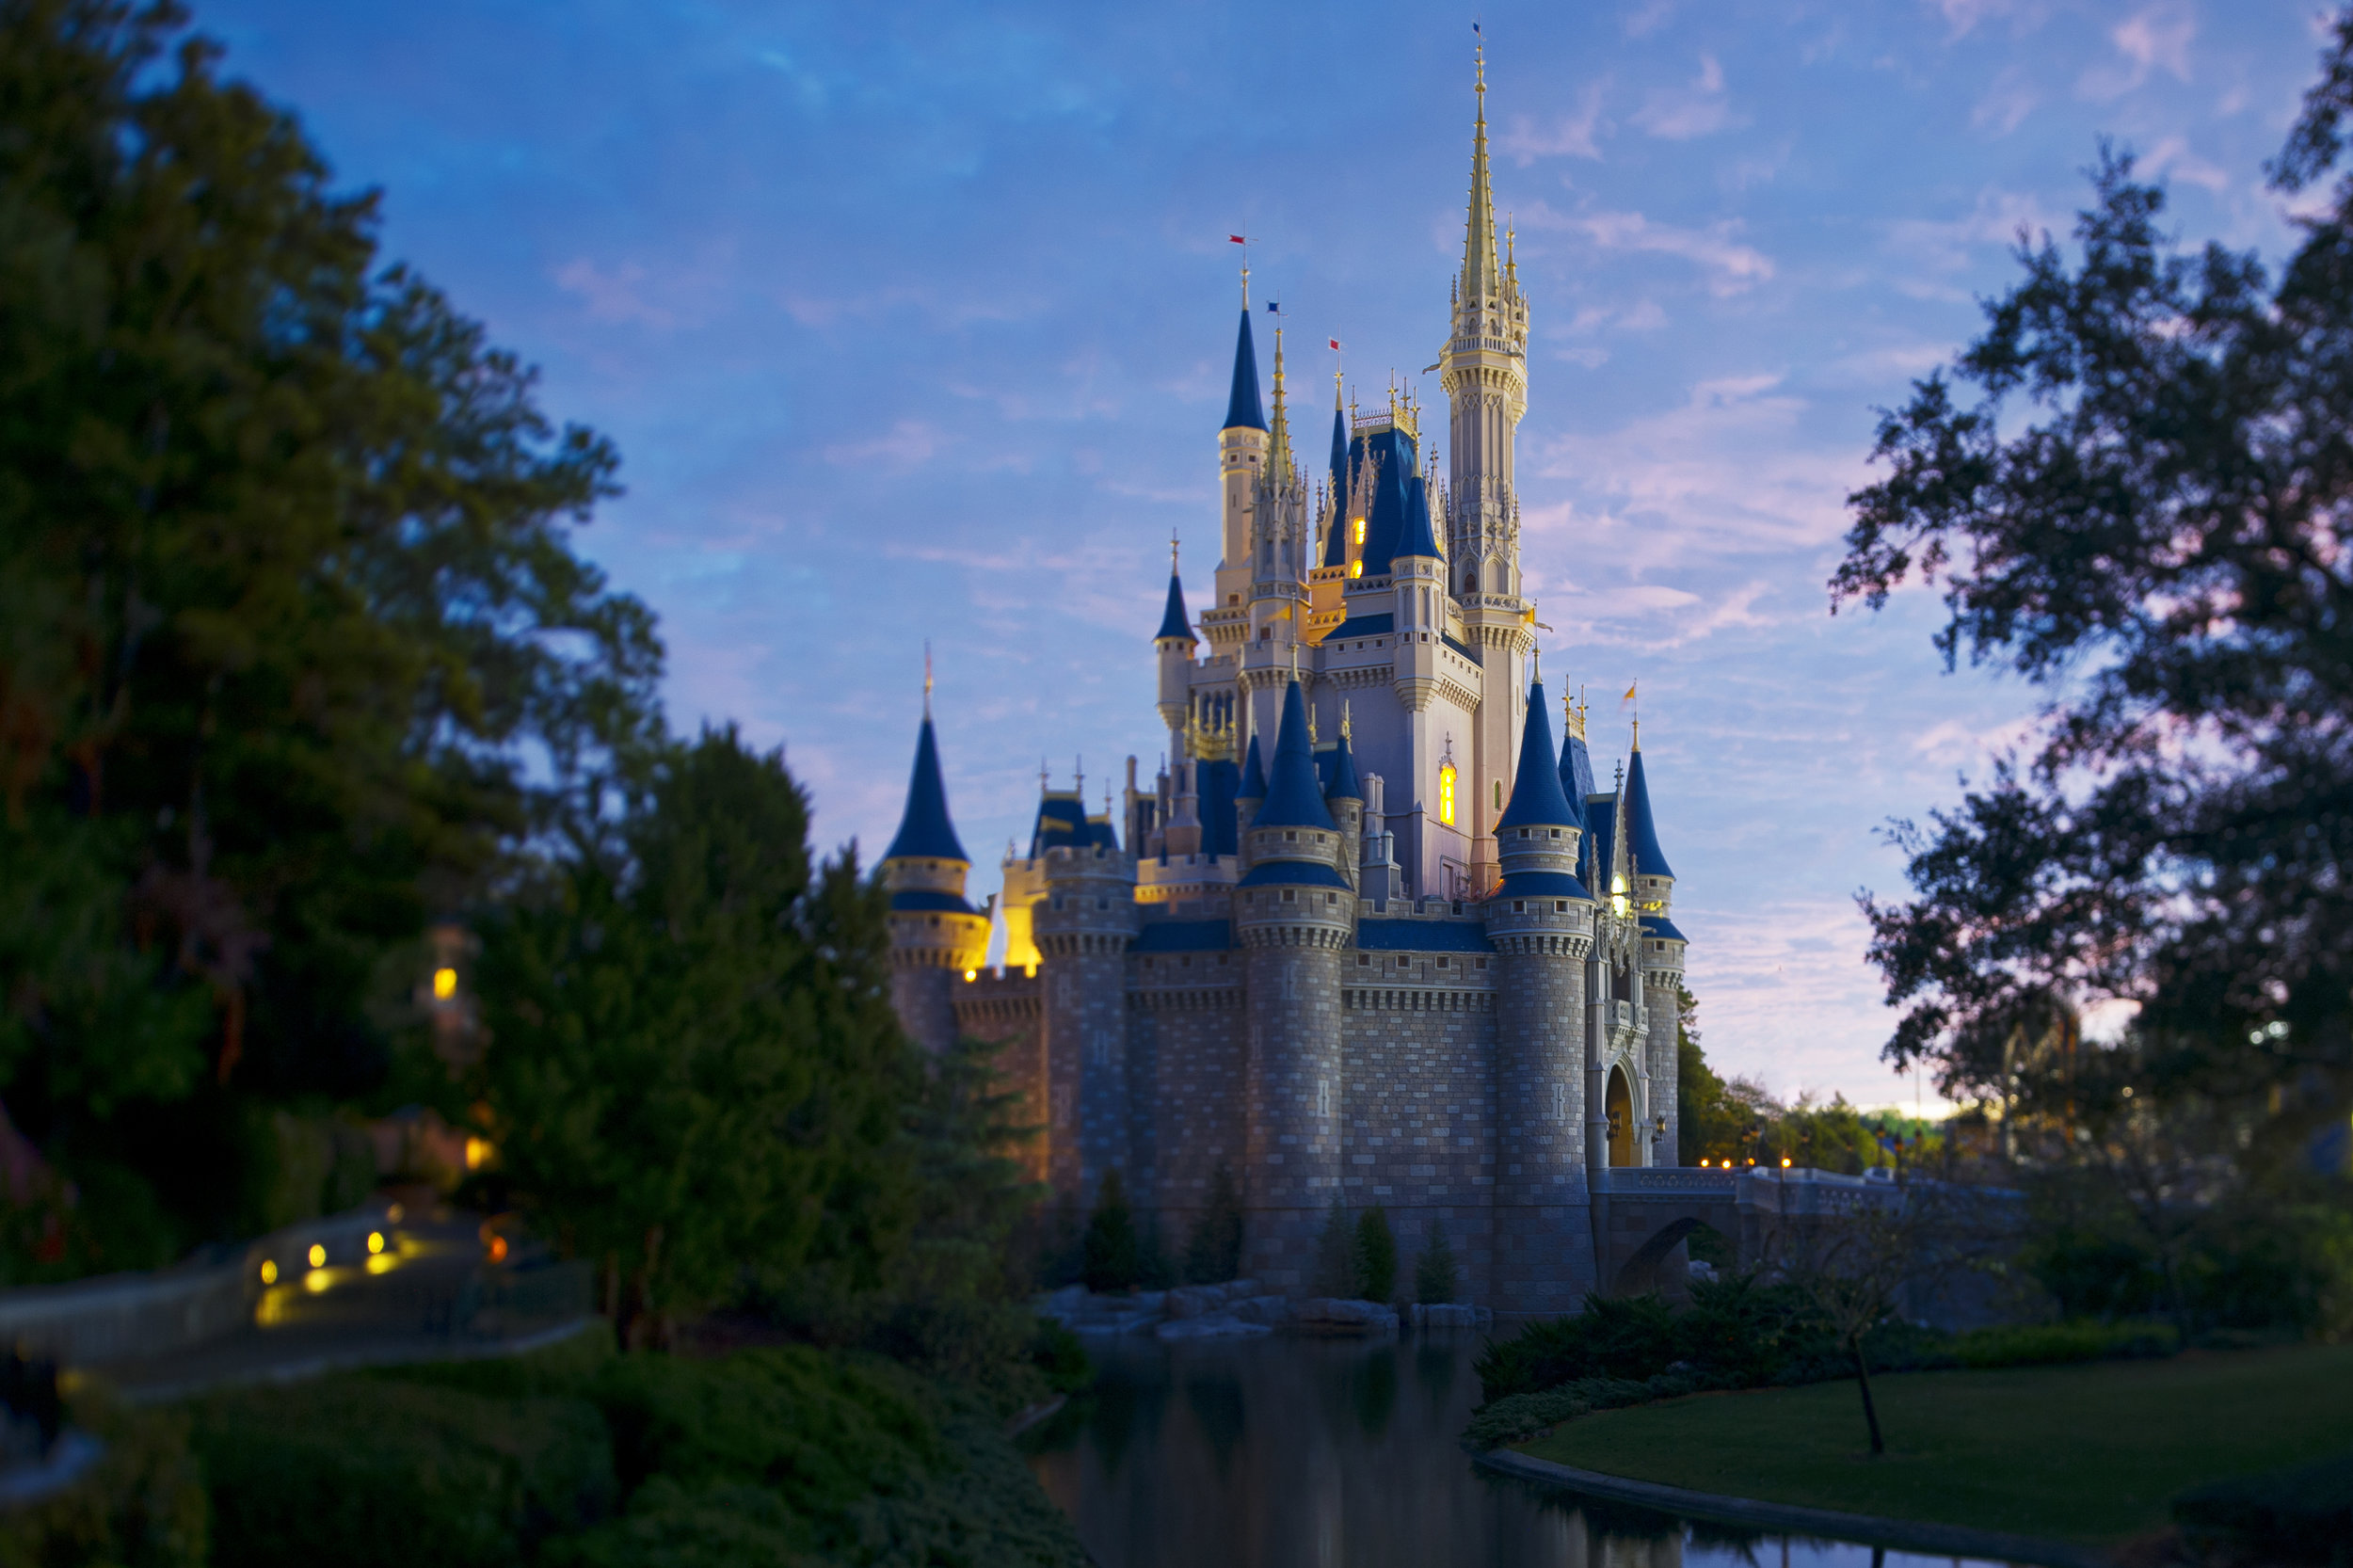 Walt Disney World - With four theme parks, two water parks, and over 25 resort hotels, you're never far from the excitement!